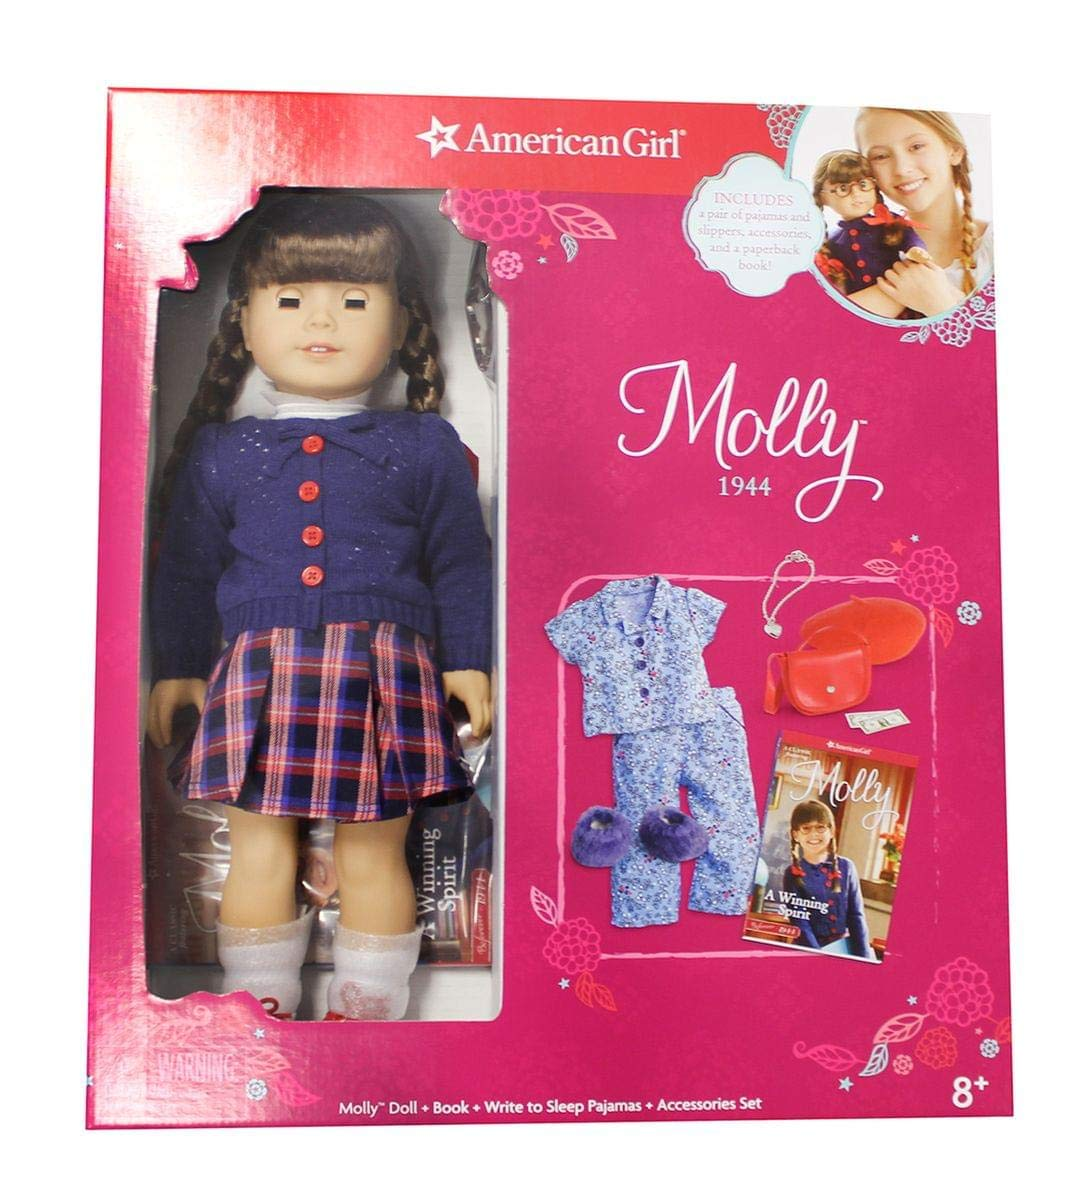 Book Pajamas Accessories Set AG American Girl Molly Doll 1944